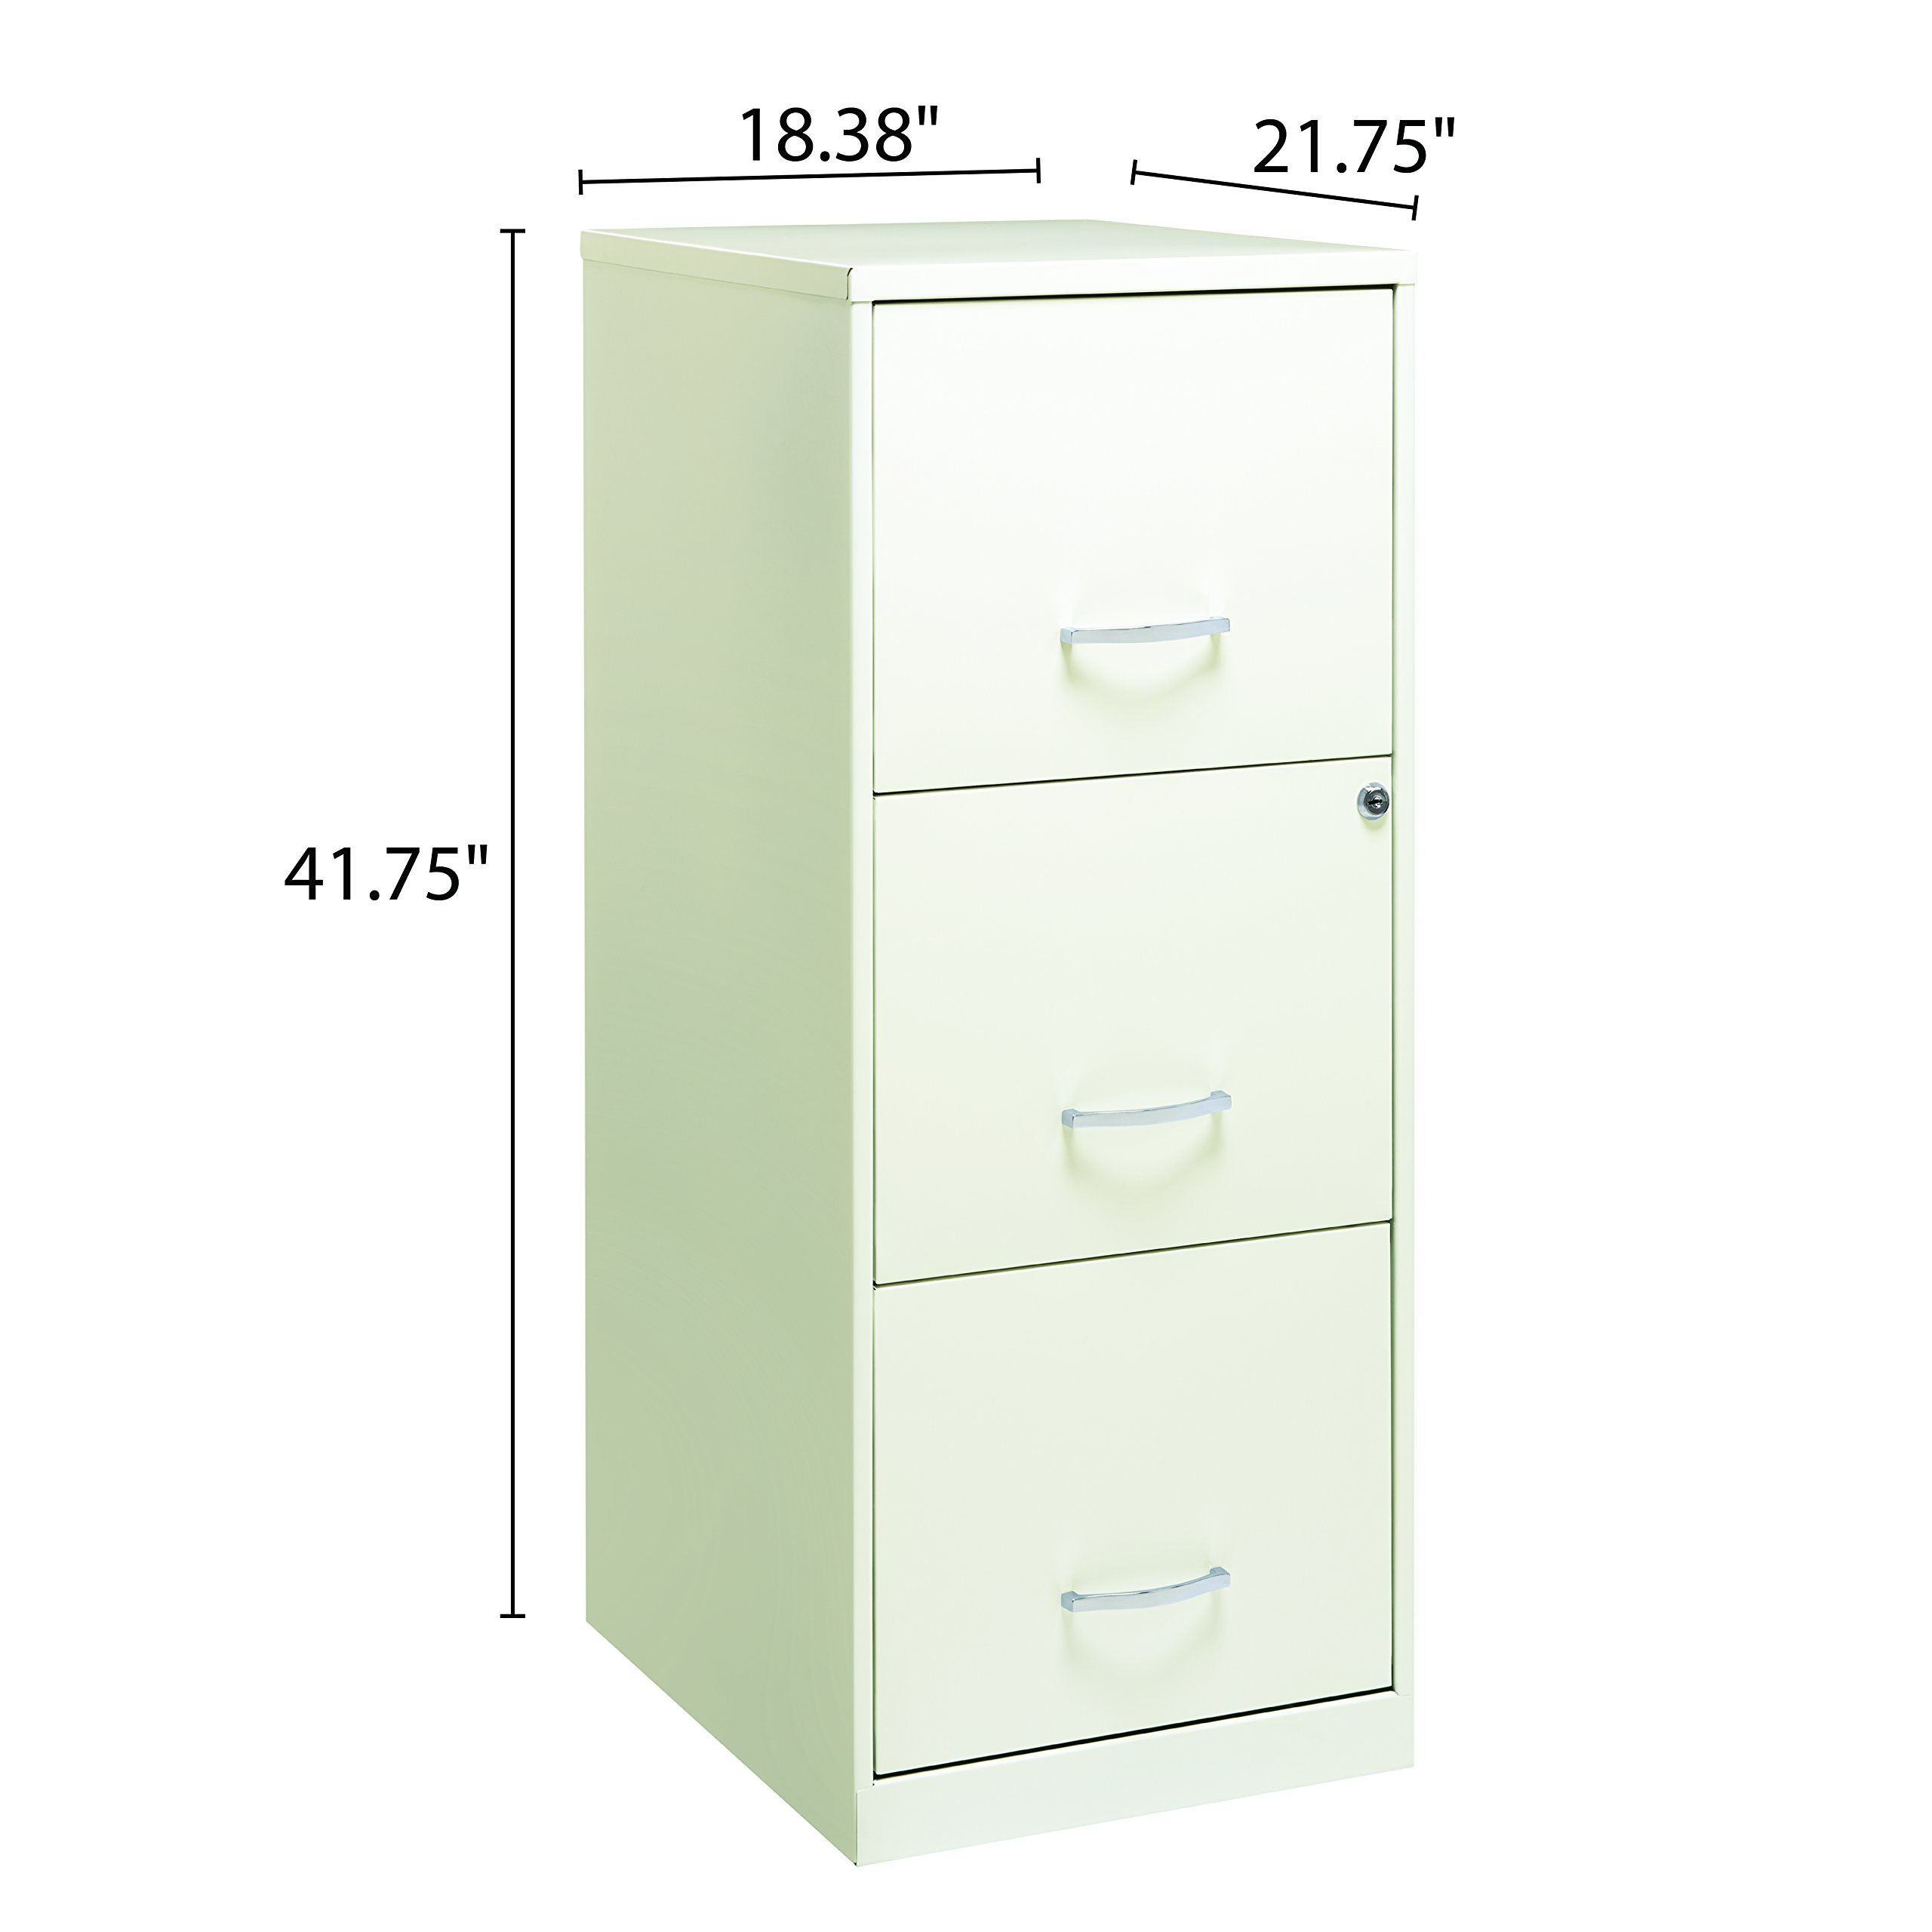 Office Dimensions 18'' Deep 3 Drawer Vertical File Cabinet with Lock for Office Storage, Letter-Sized, Pearl White by Space Solutions (Image #4)